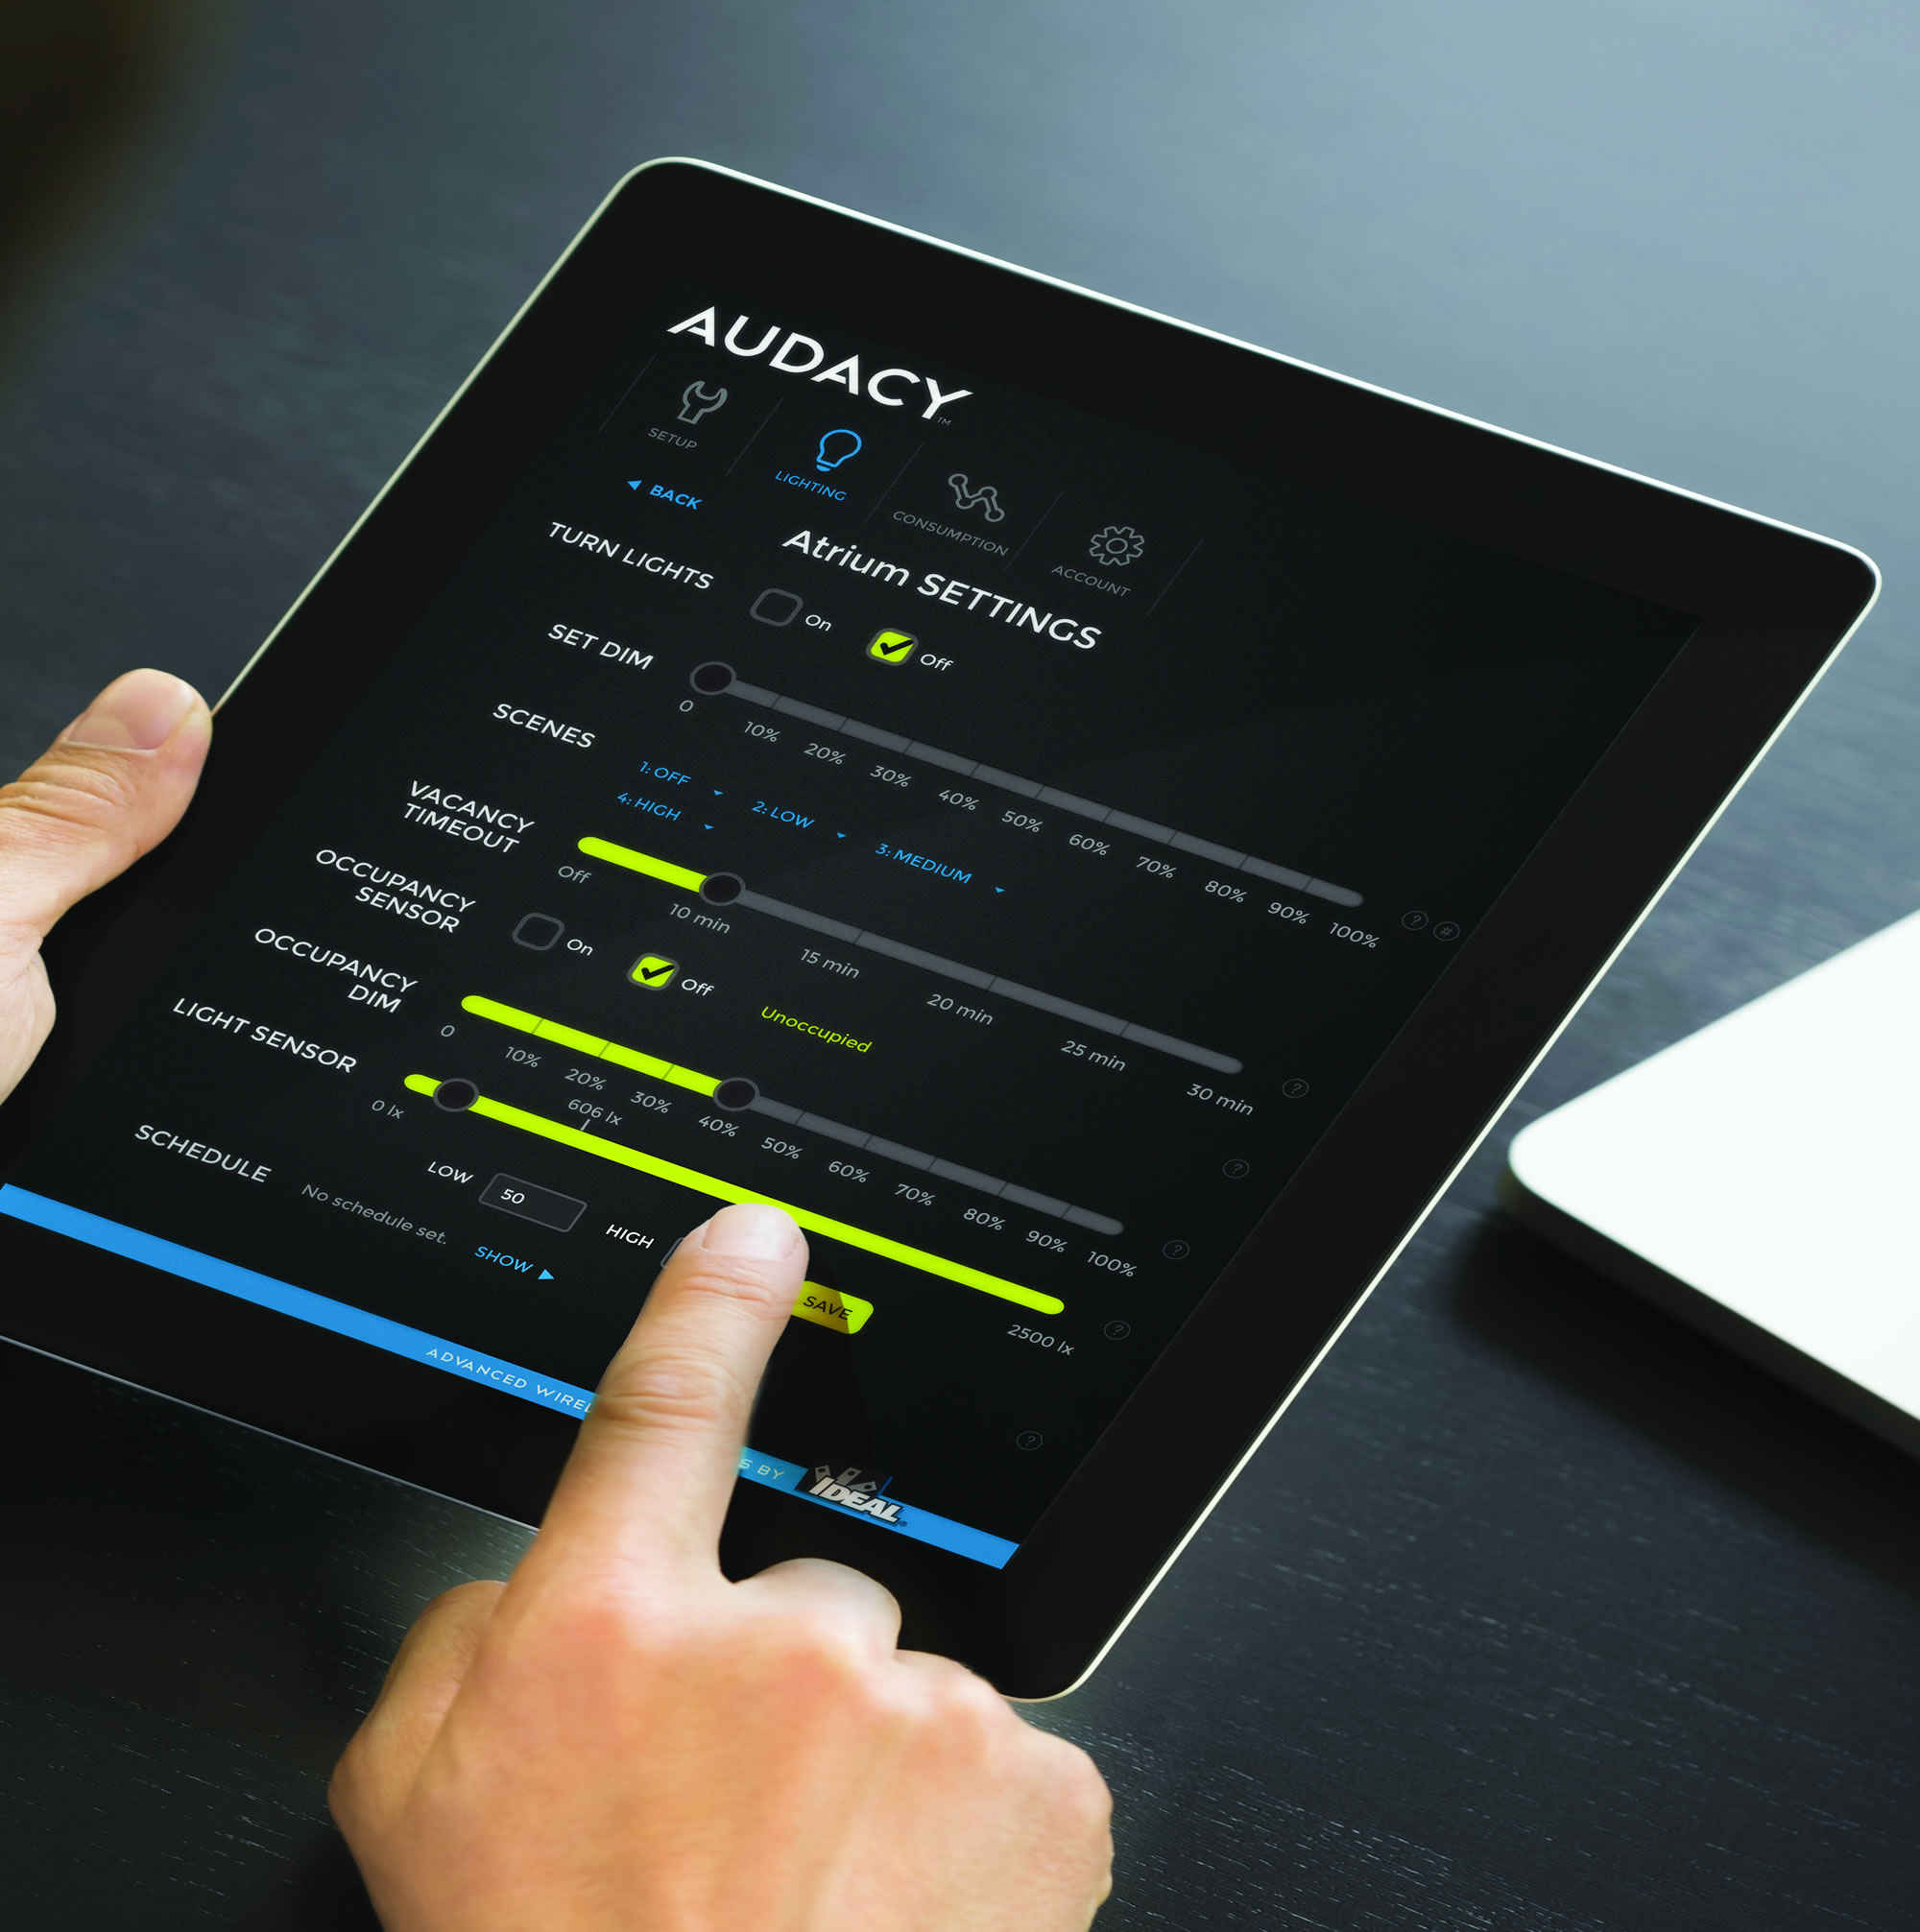 AUDACY WIRELESS LIGHTING CONTROLS BY CMD